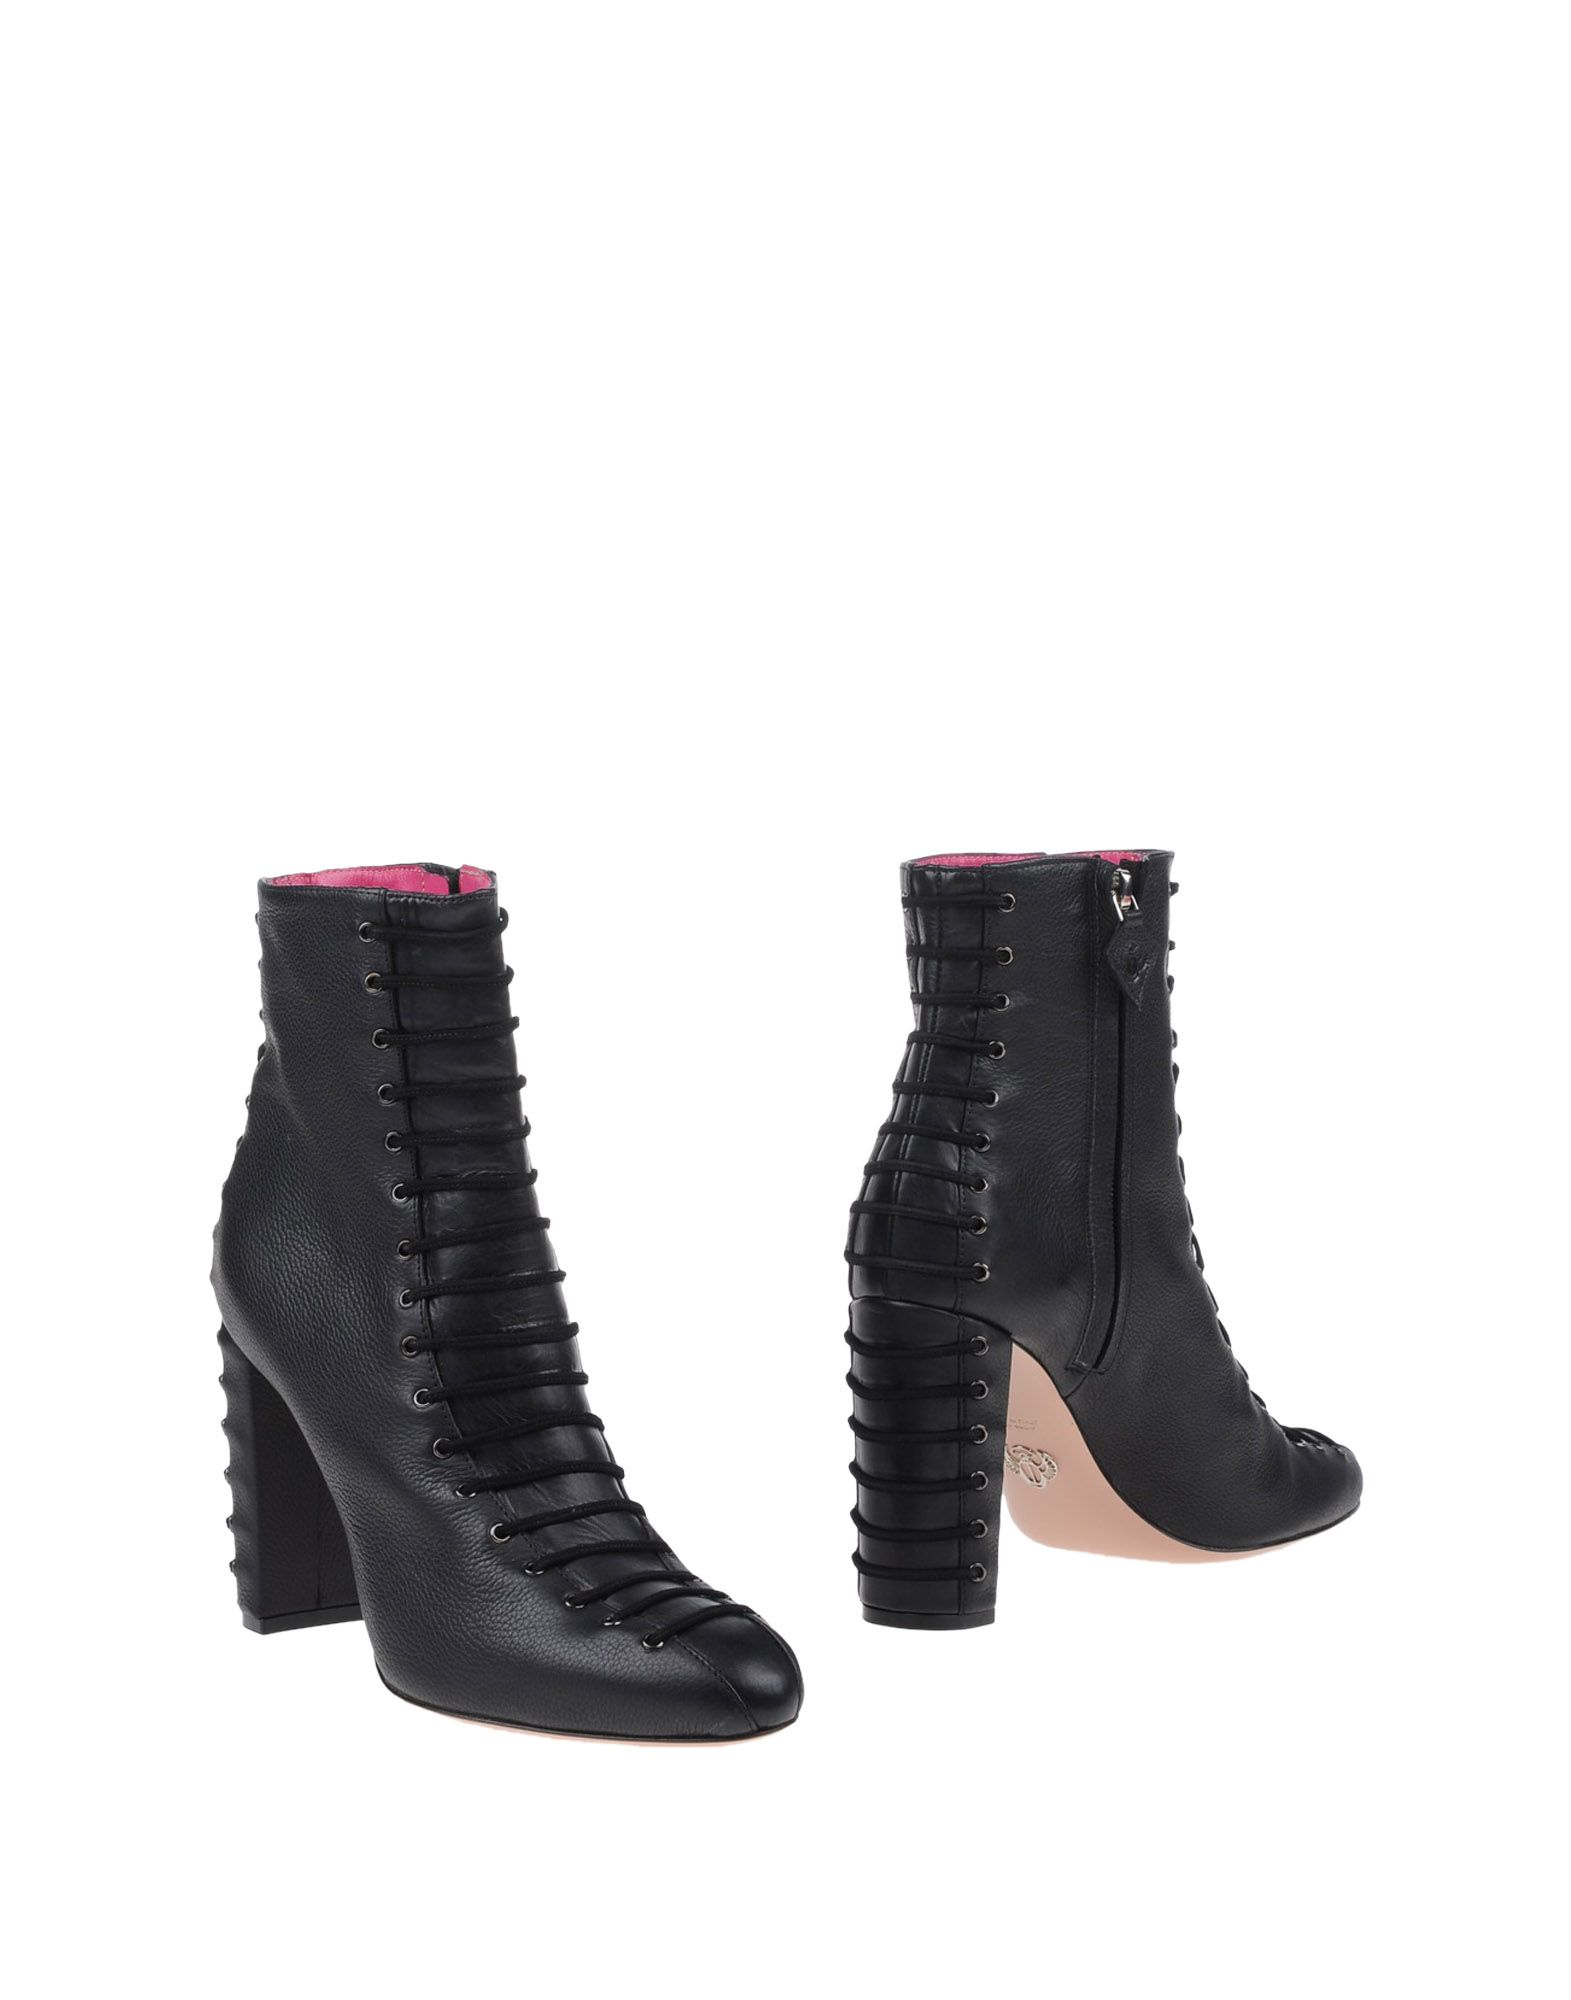 Bottine Oscar Tiye Femme - Bottines Oscar Tiye Noir Confortable et belle